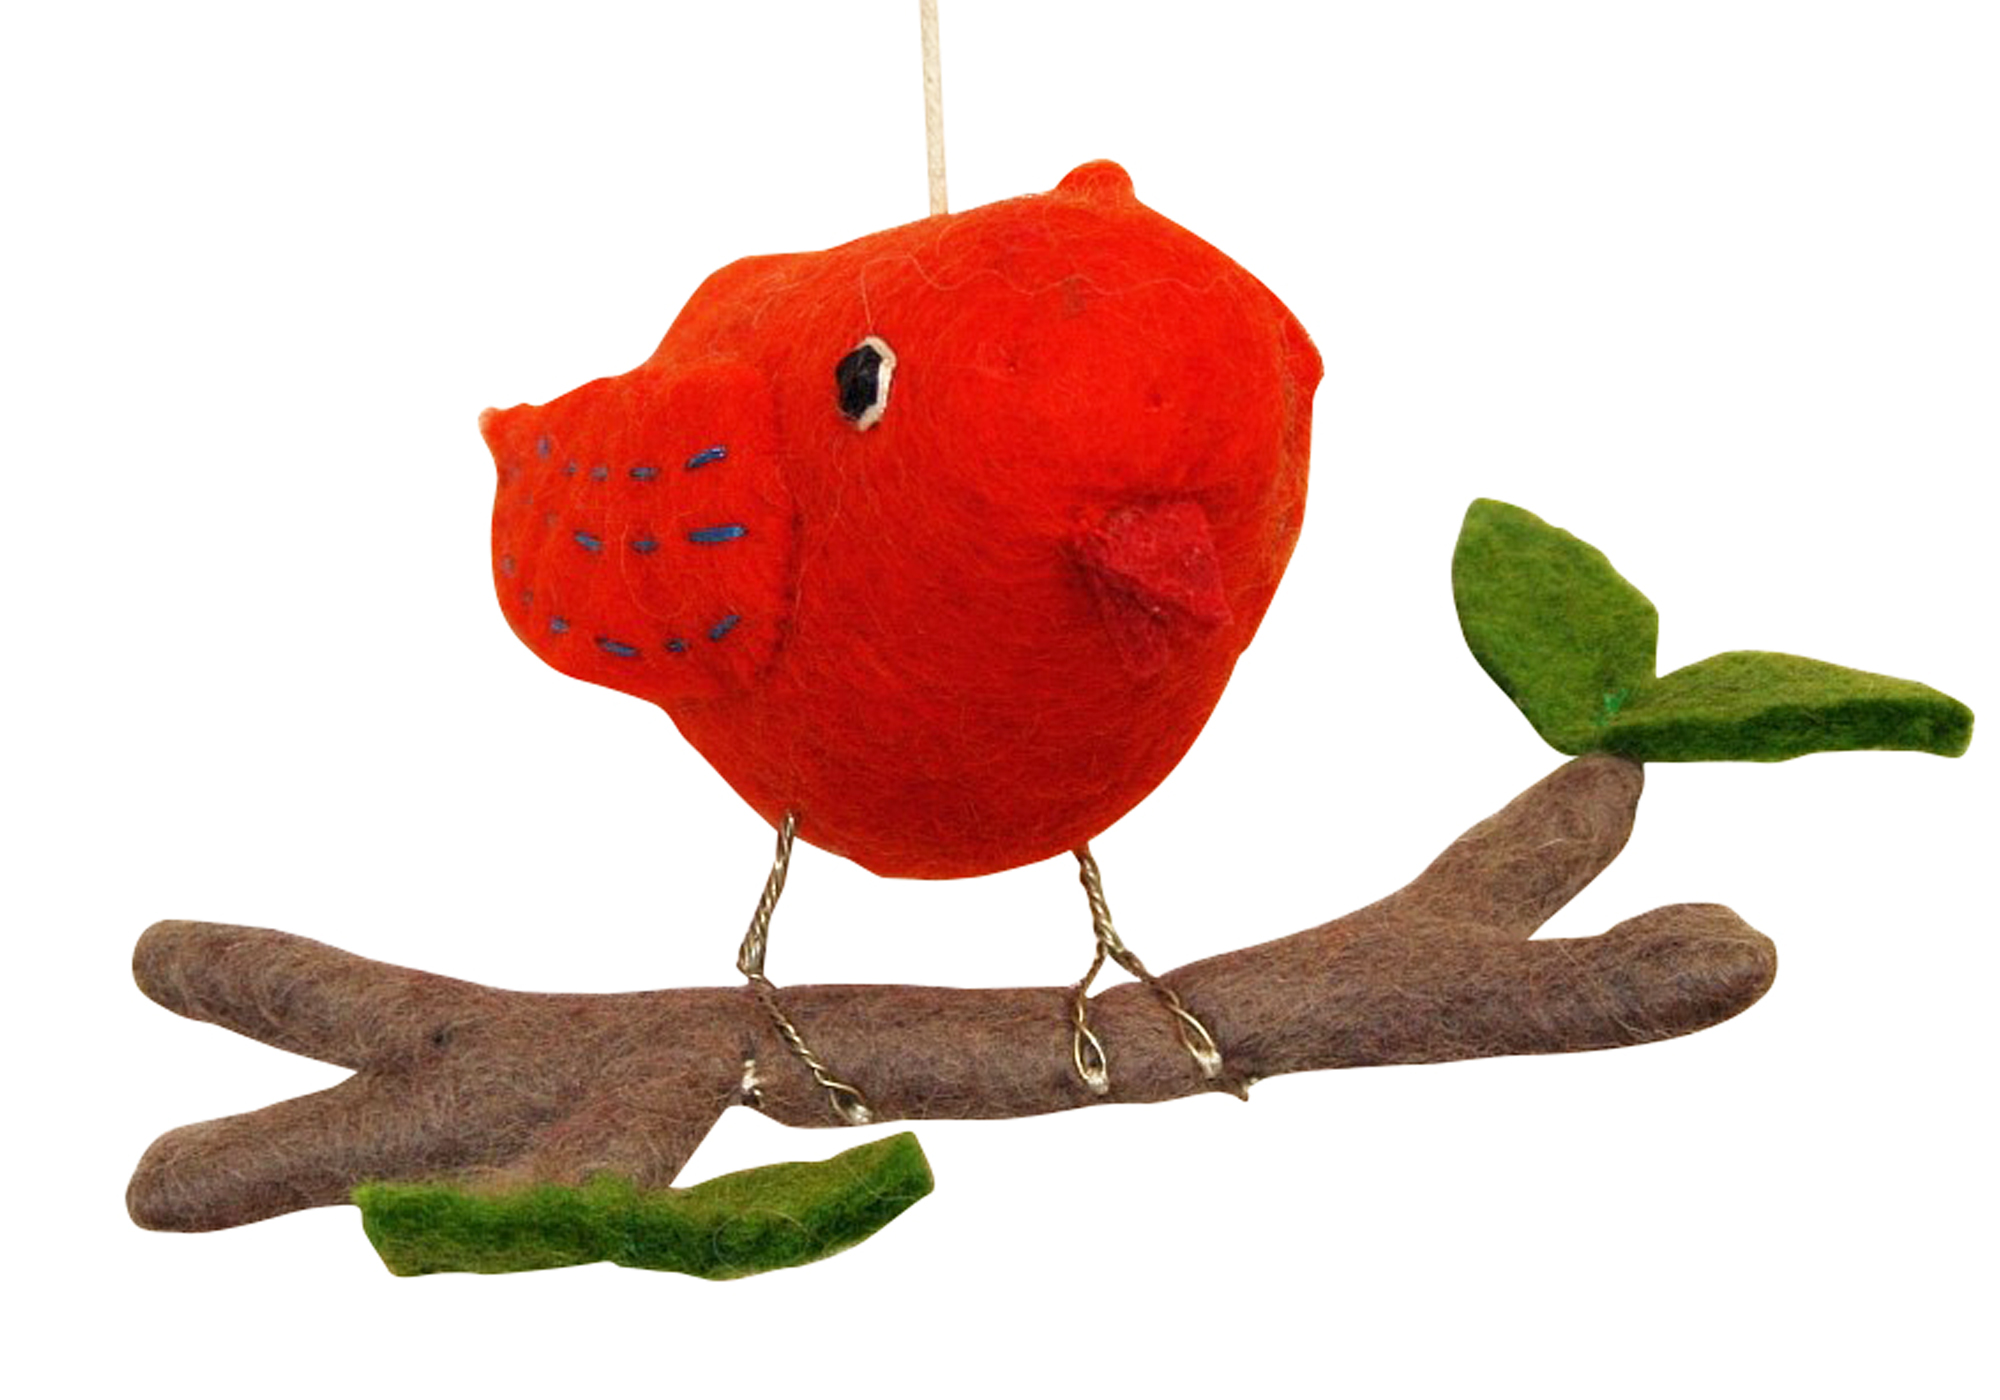 Big Boy Orange on a Branch